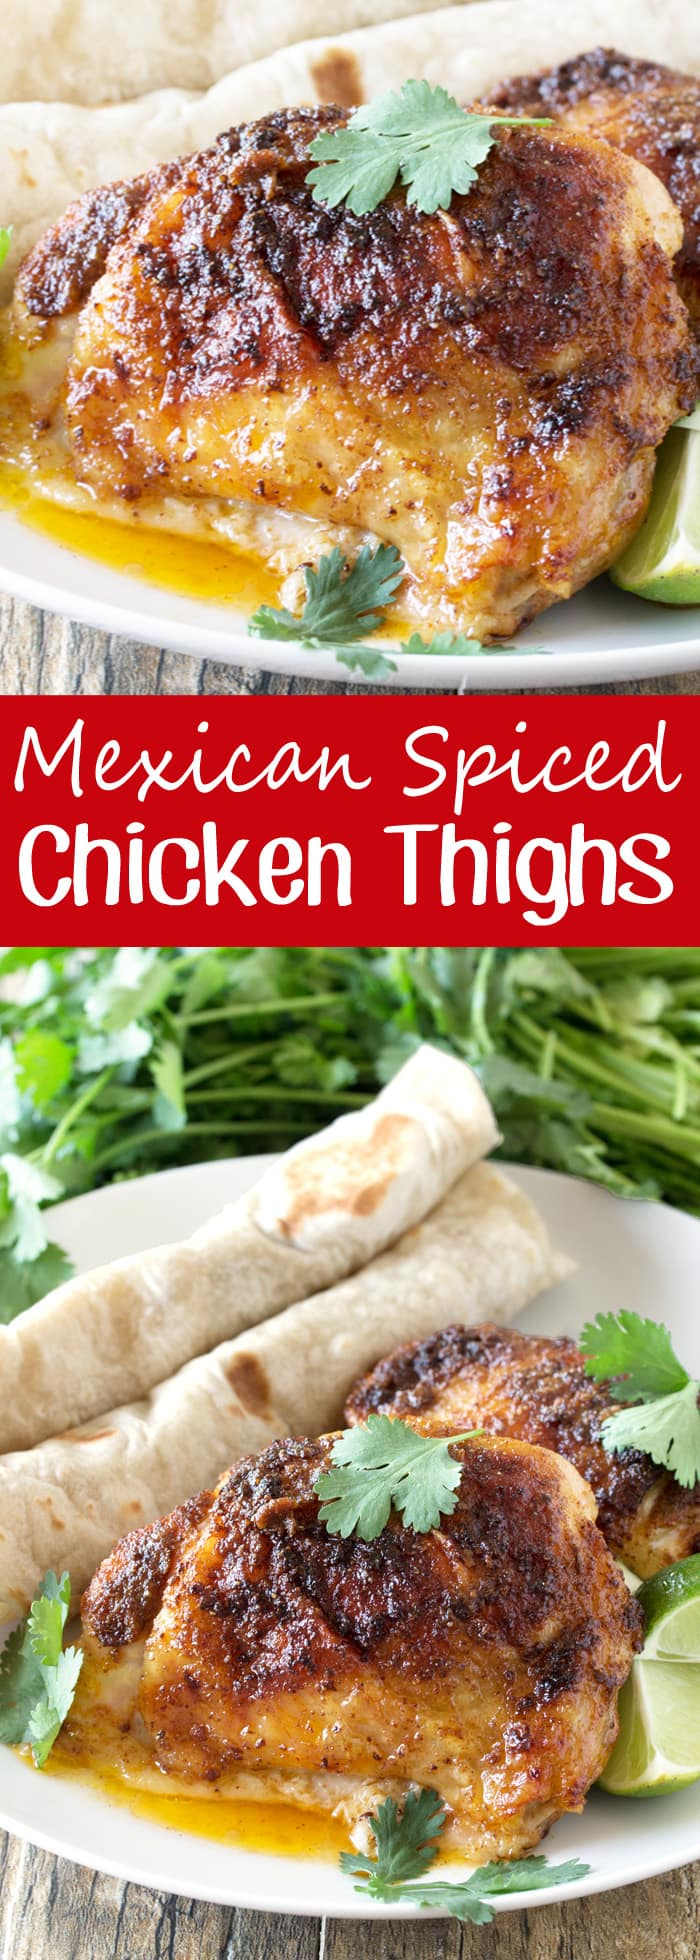 Mexican-Spiced Chicken Thighs take less than 5 minutes to get in the oven and are amazing served up with warm tortillas. It's an easy and delicious dinner!